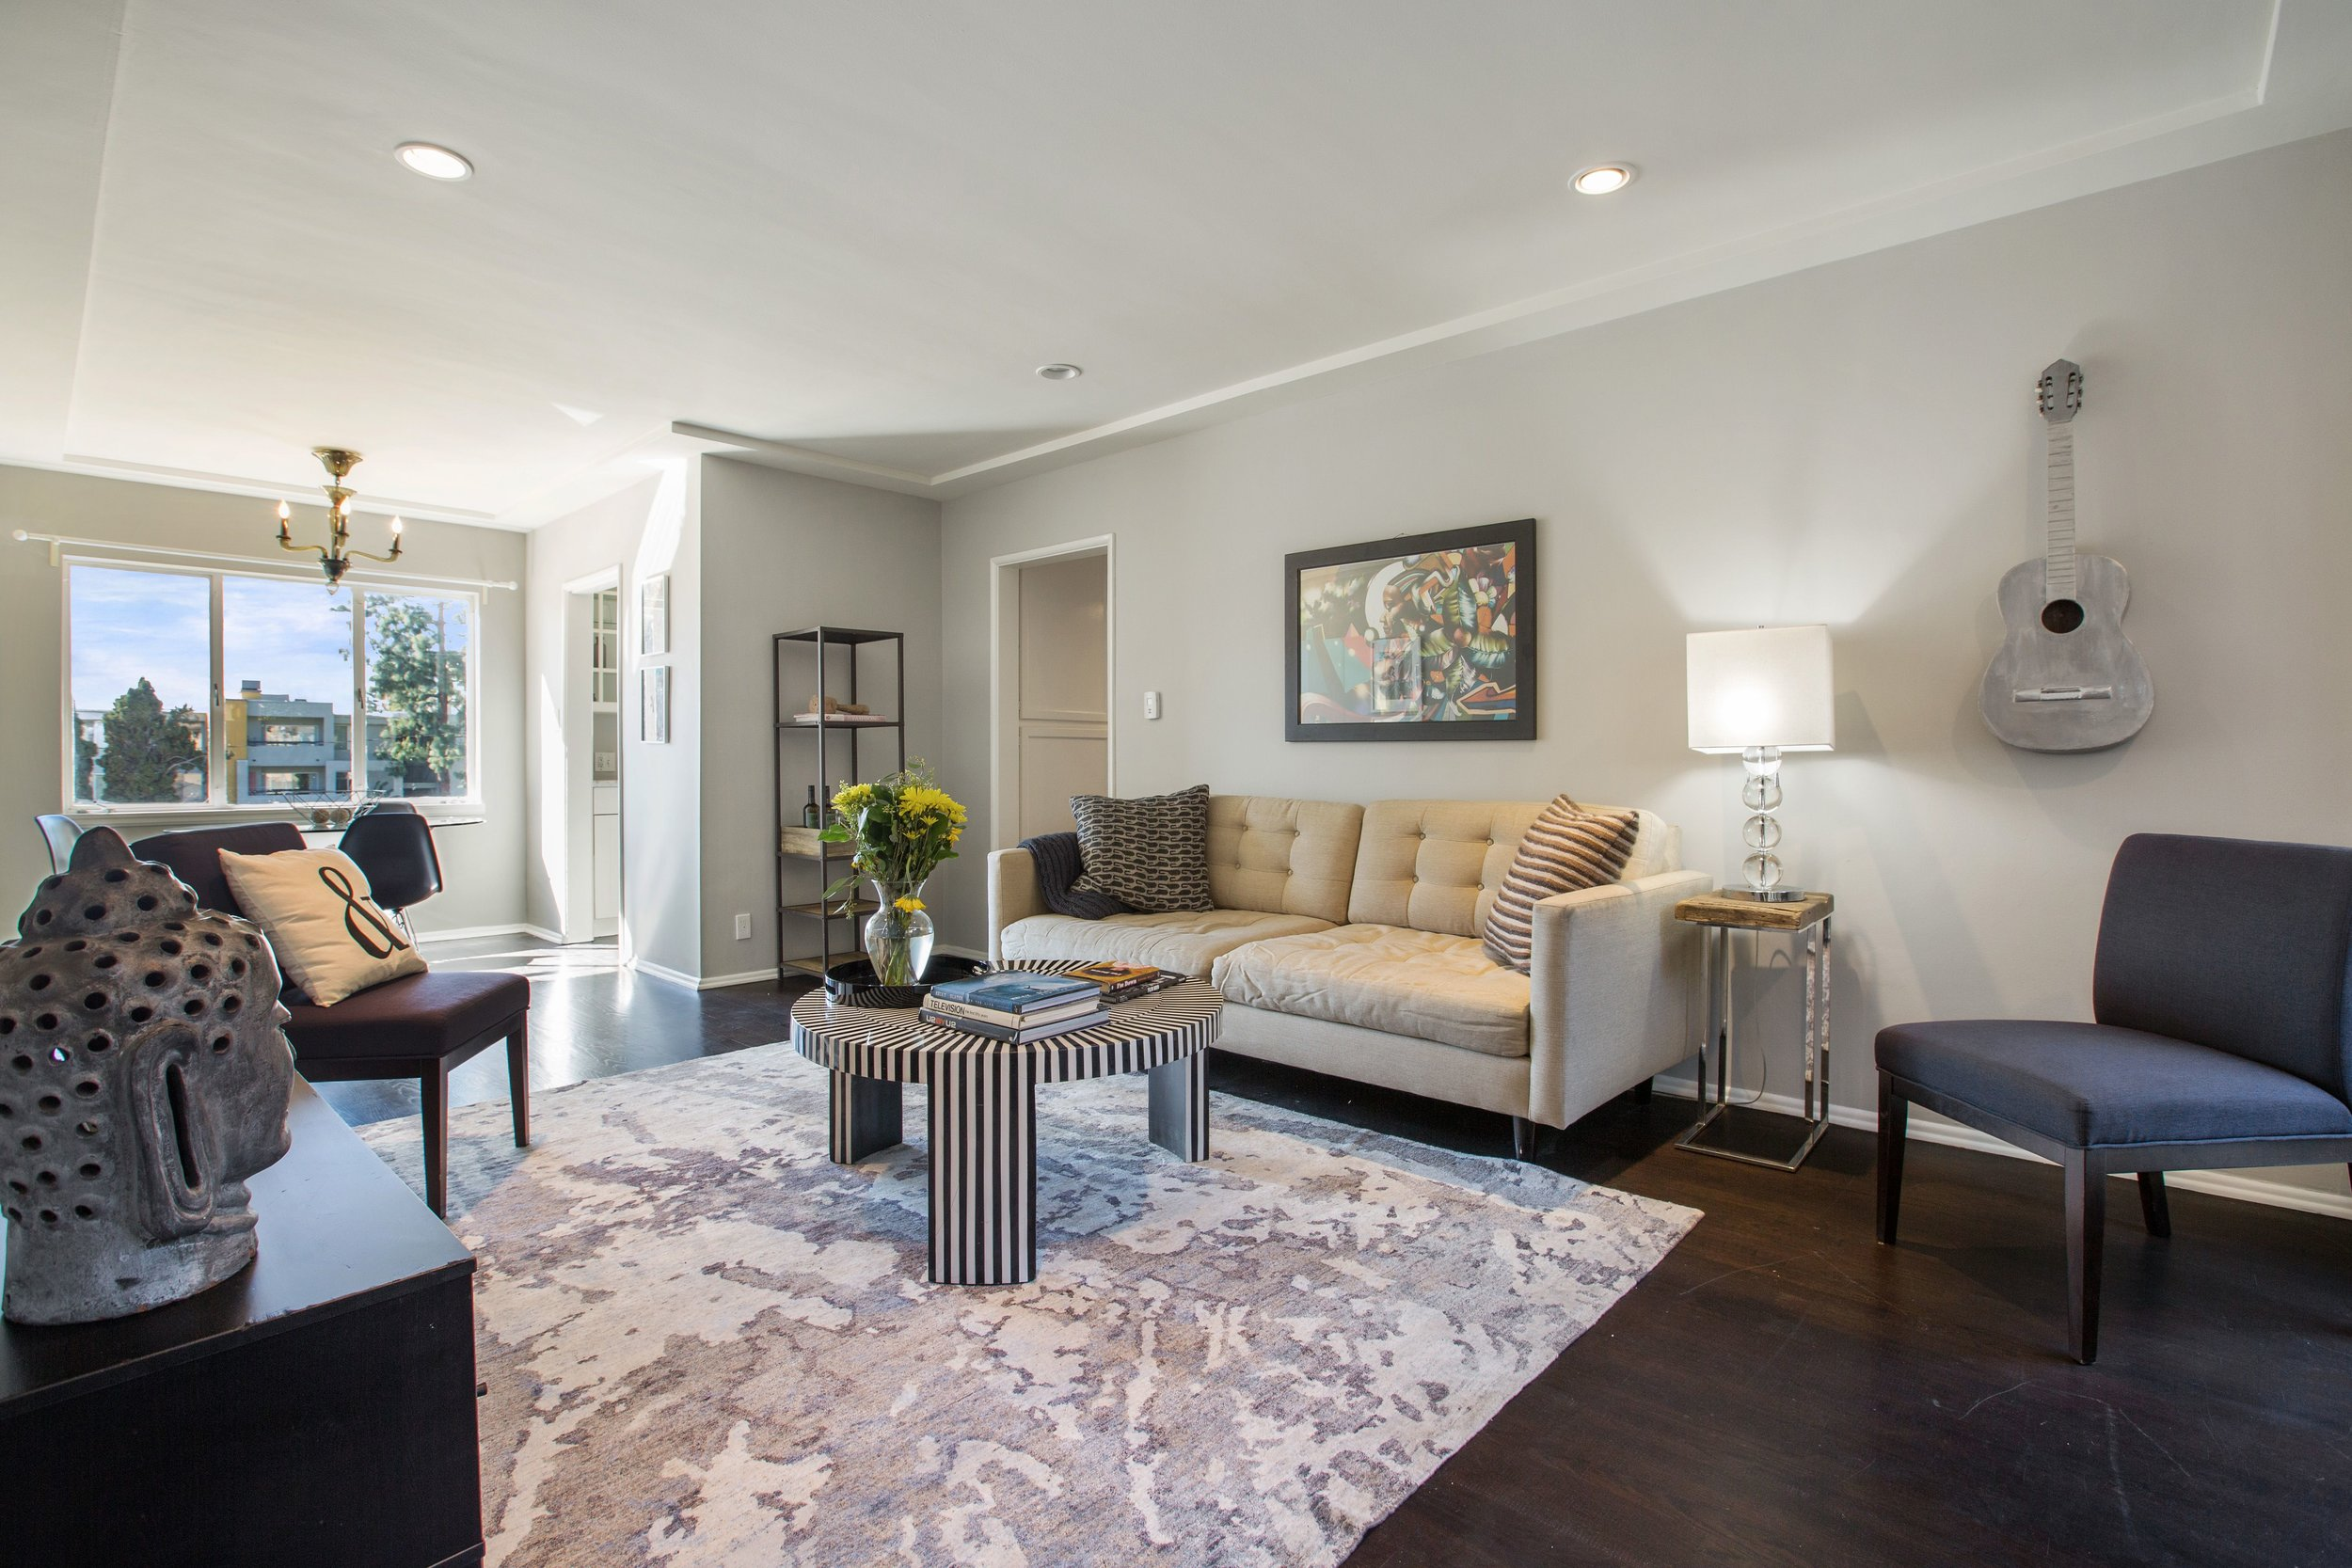 1318 N CRESCENT HEIGHTS BLVD #108, WeHo - $585,000 -SOLD!